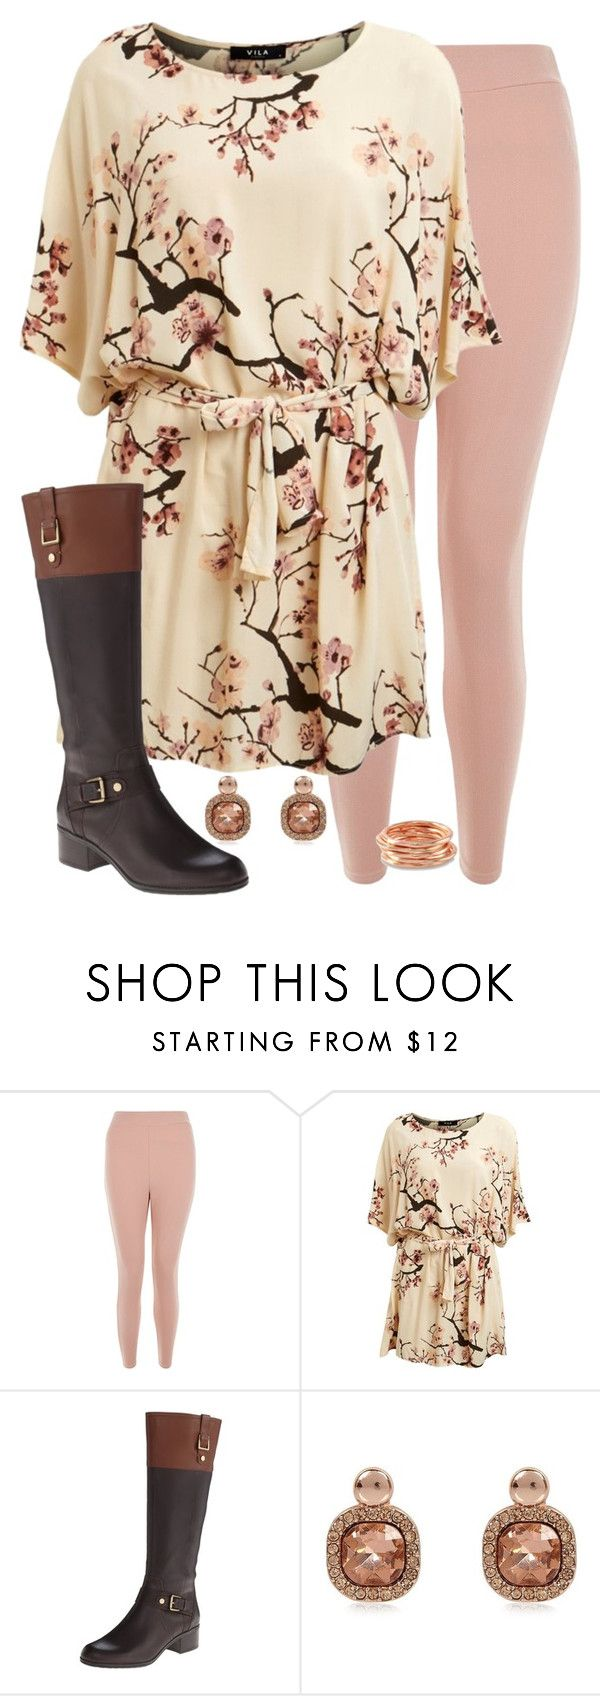 """""""Teacher Outfits on a Teacher's Budget 179"""" by allij28 ❤ liked on Polyvore featuring New Look, Lipsy, Bandolino and River Island"""